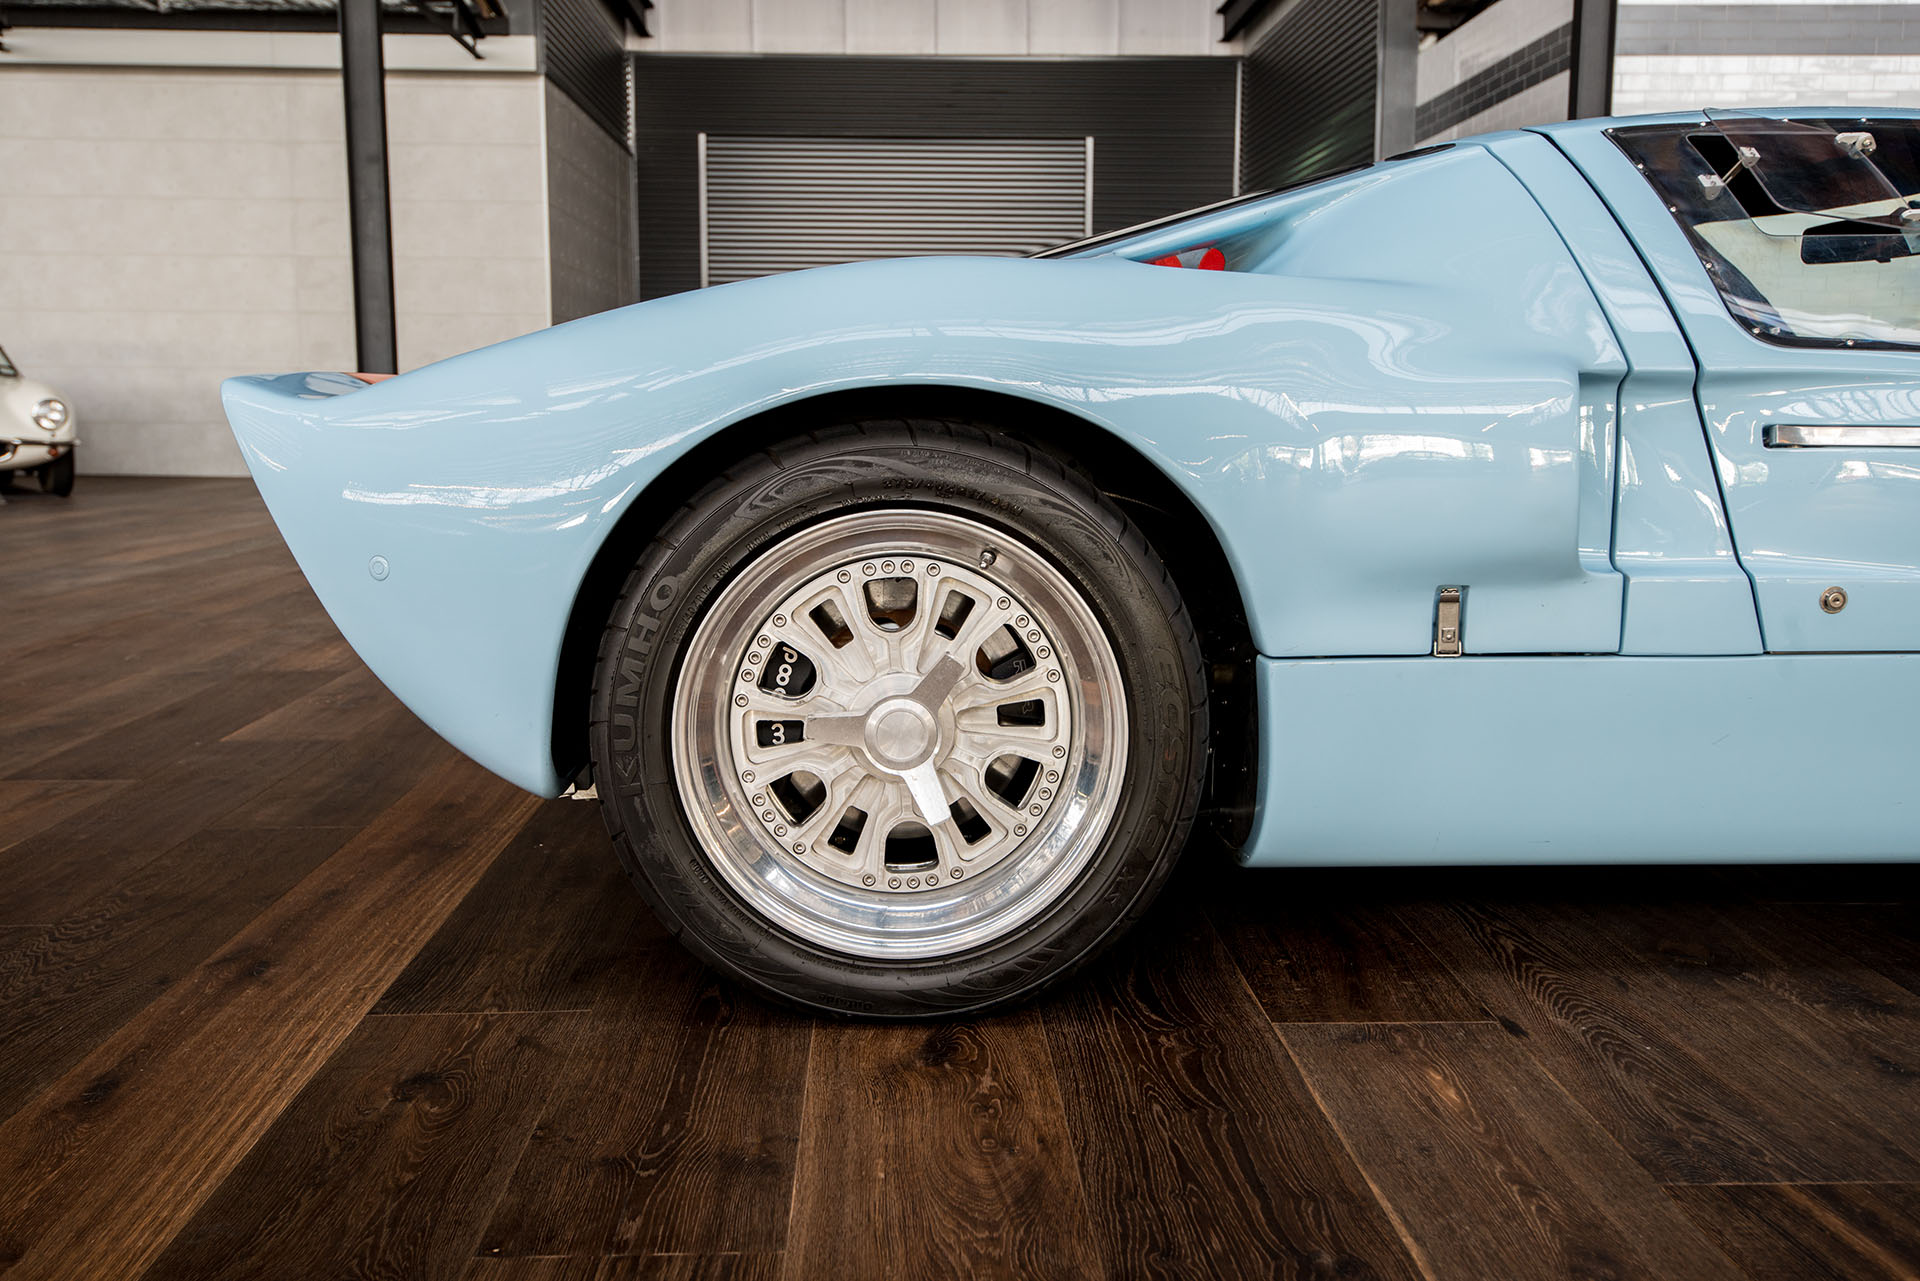 Gt40 Replica For Sale >> 2010 Ford GT40 Replica - Richmonds - Classic and Prestige Cars - Storage and Sales - Adelaide ...